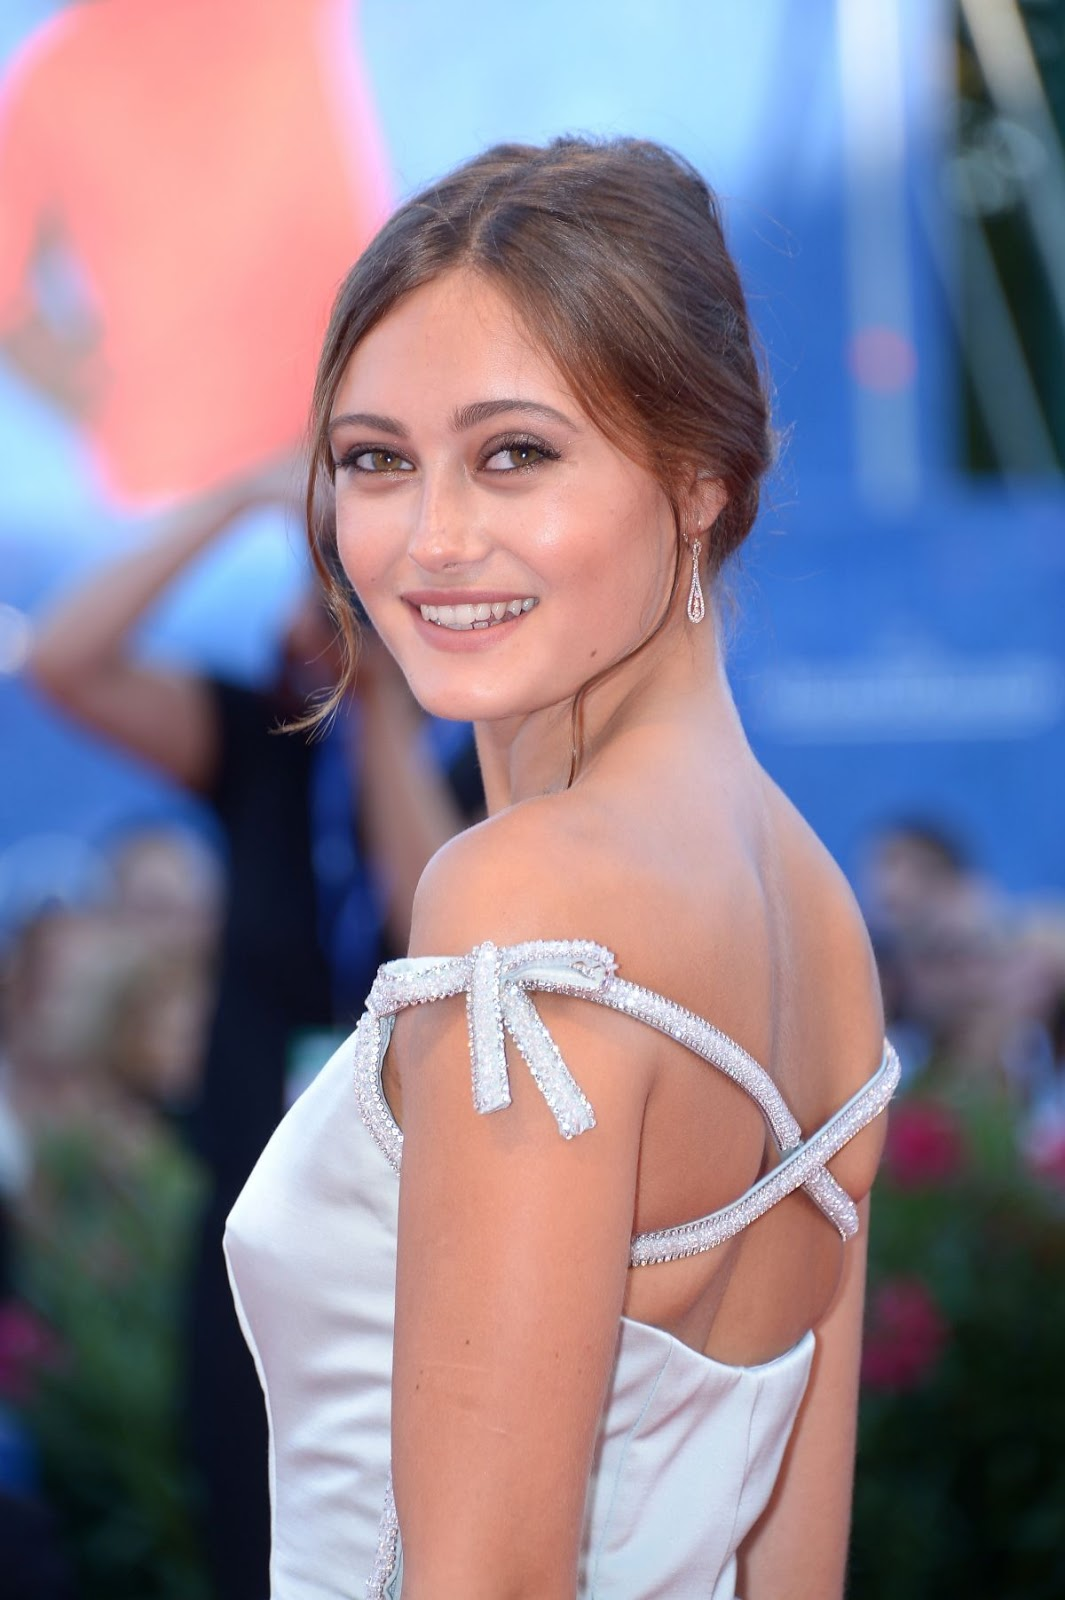 Full HQ Photos of Ella Purnell At La La Land Premiere At 2016 Venice Film Festival